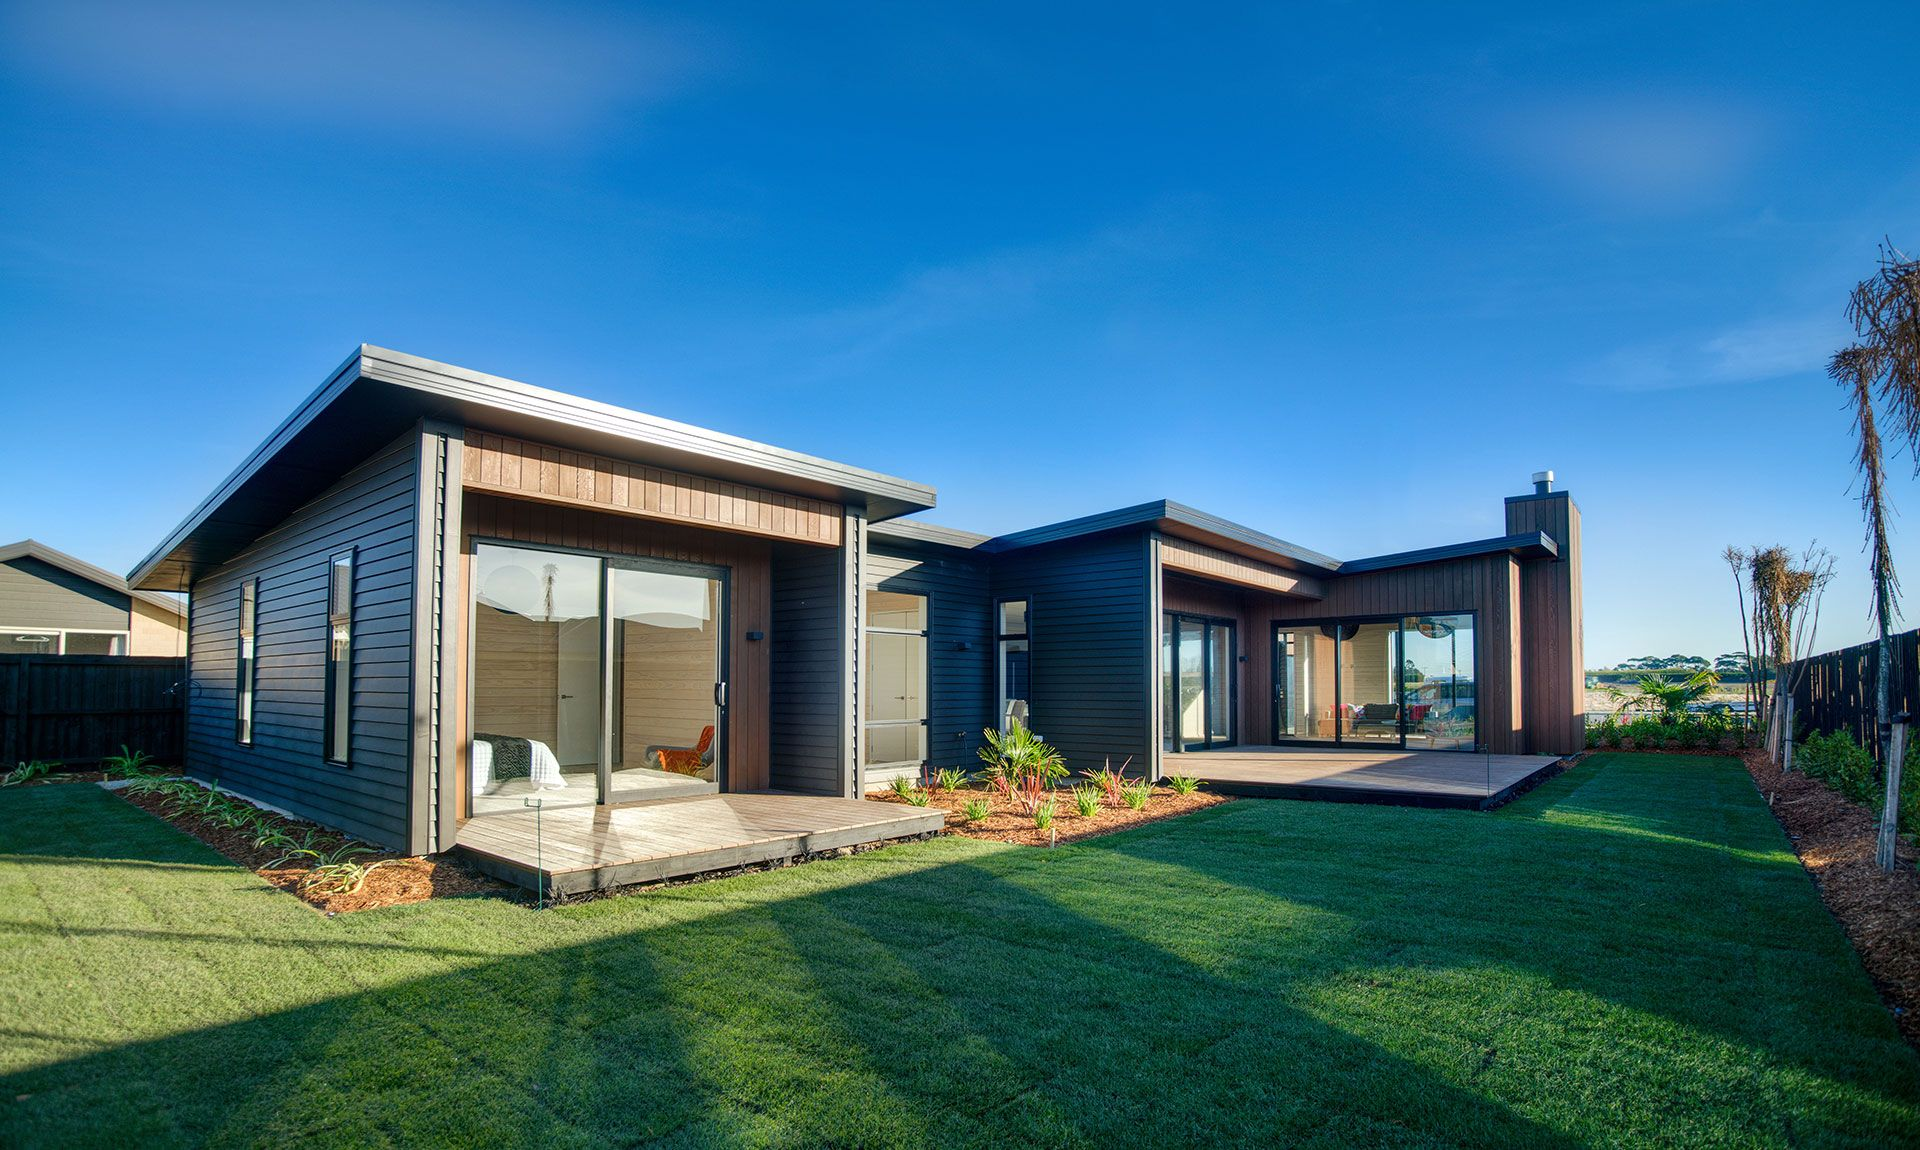 Est 1968 Fraemohs Homes Are One Of New Zealand S Longest Running Building Companies We Specialise In Scandinavian Modern House Wood House Design House Design